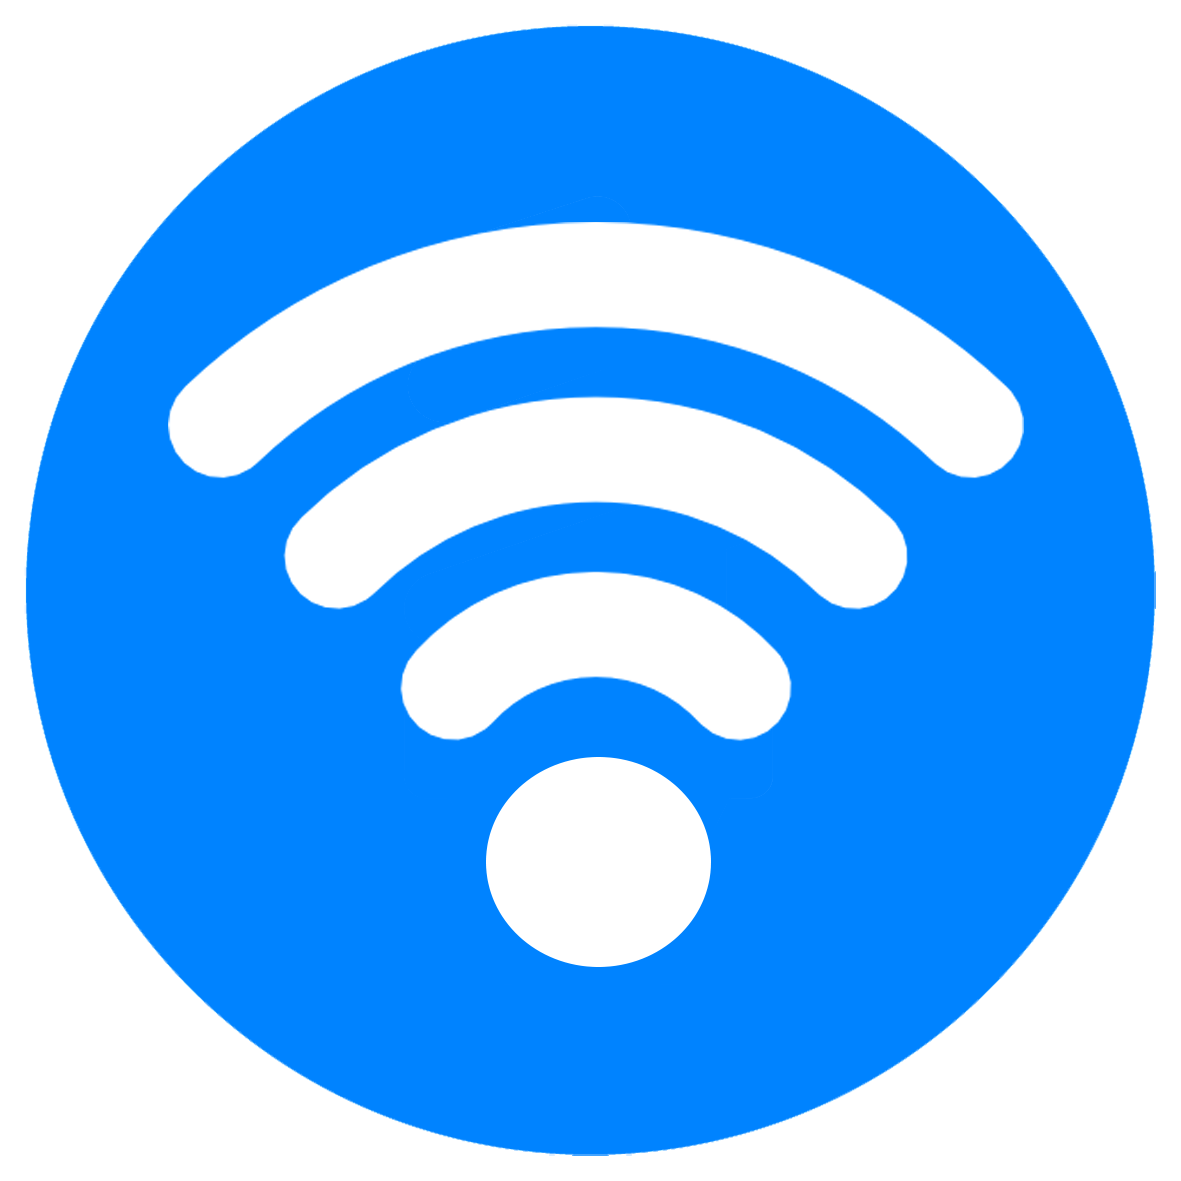 logo wifi, some countries banning wifi schools should south #13661